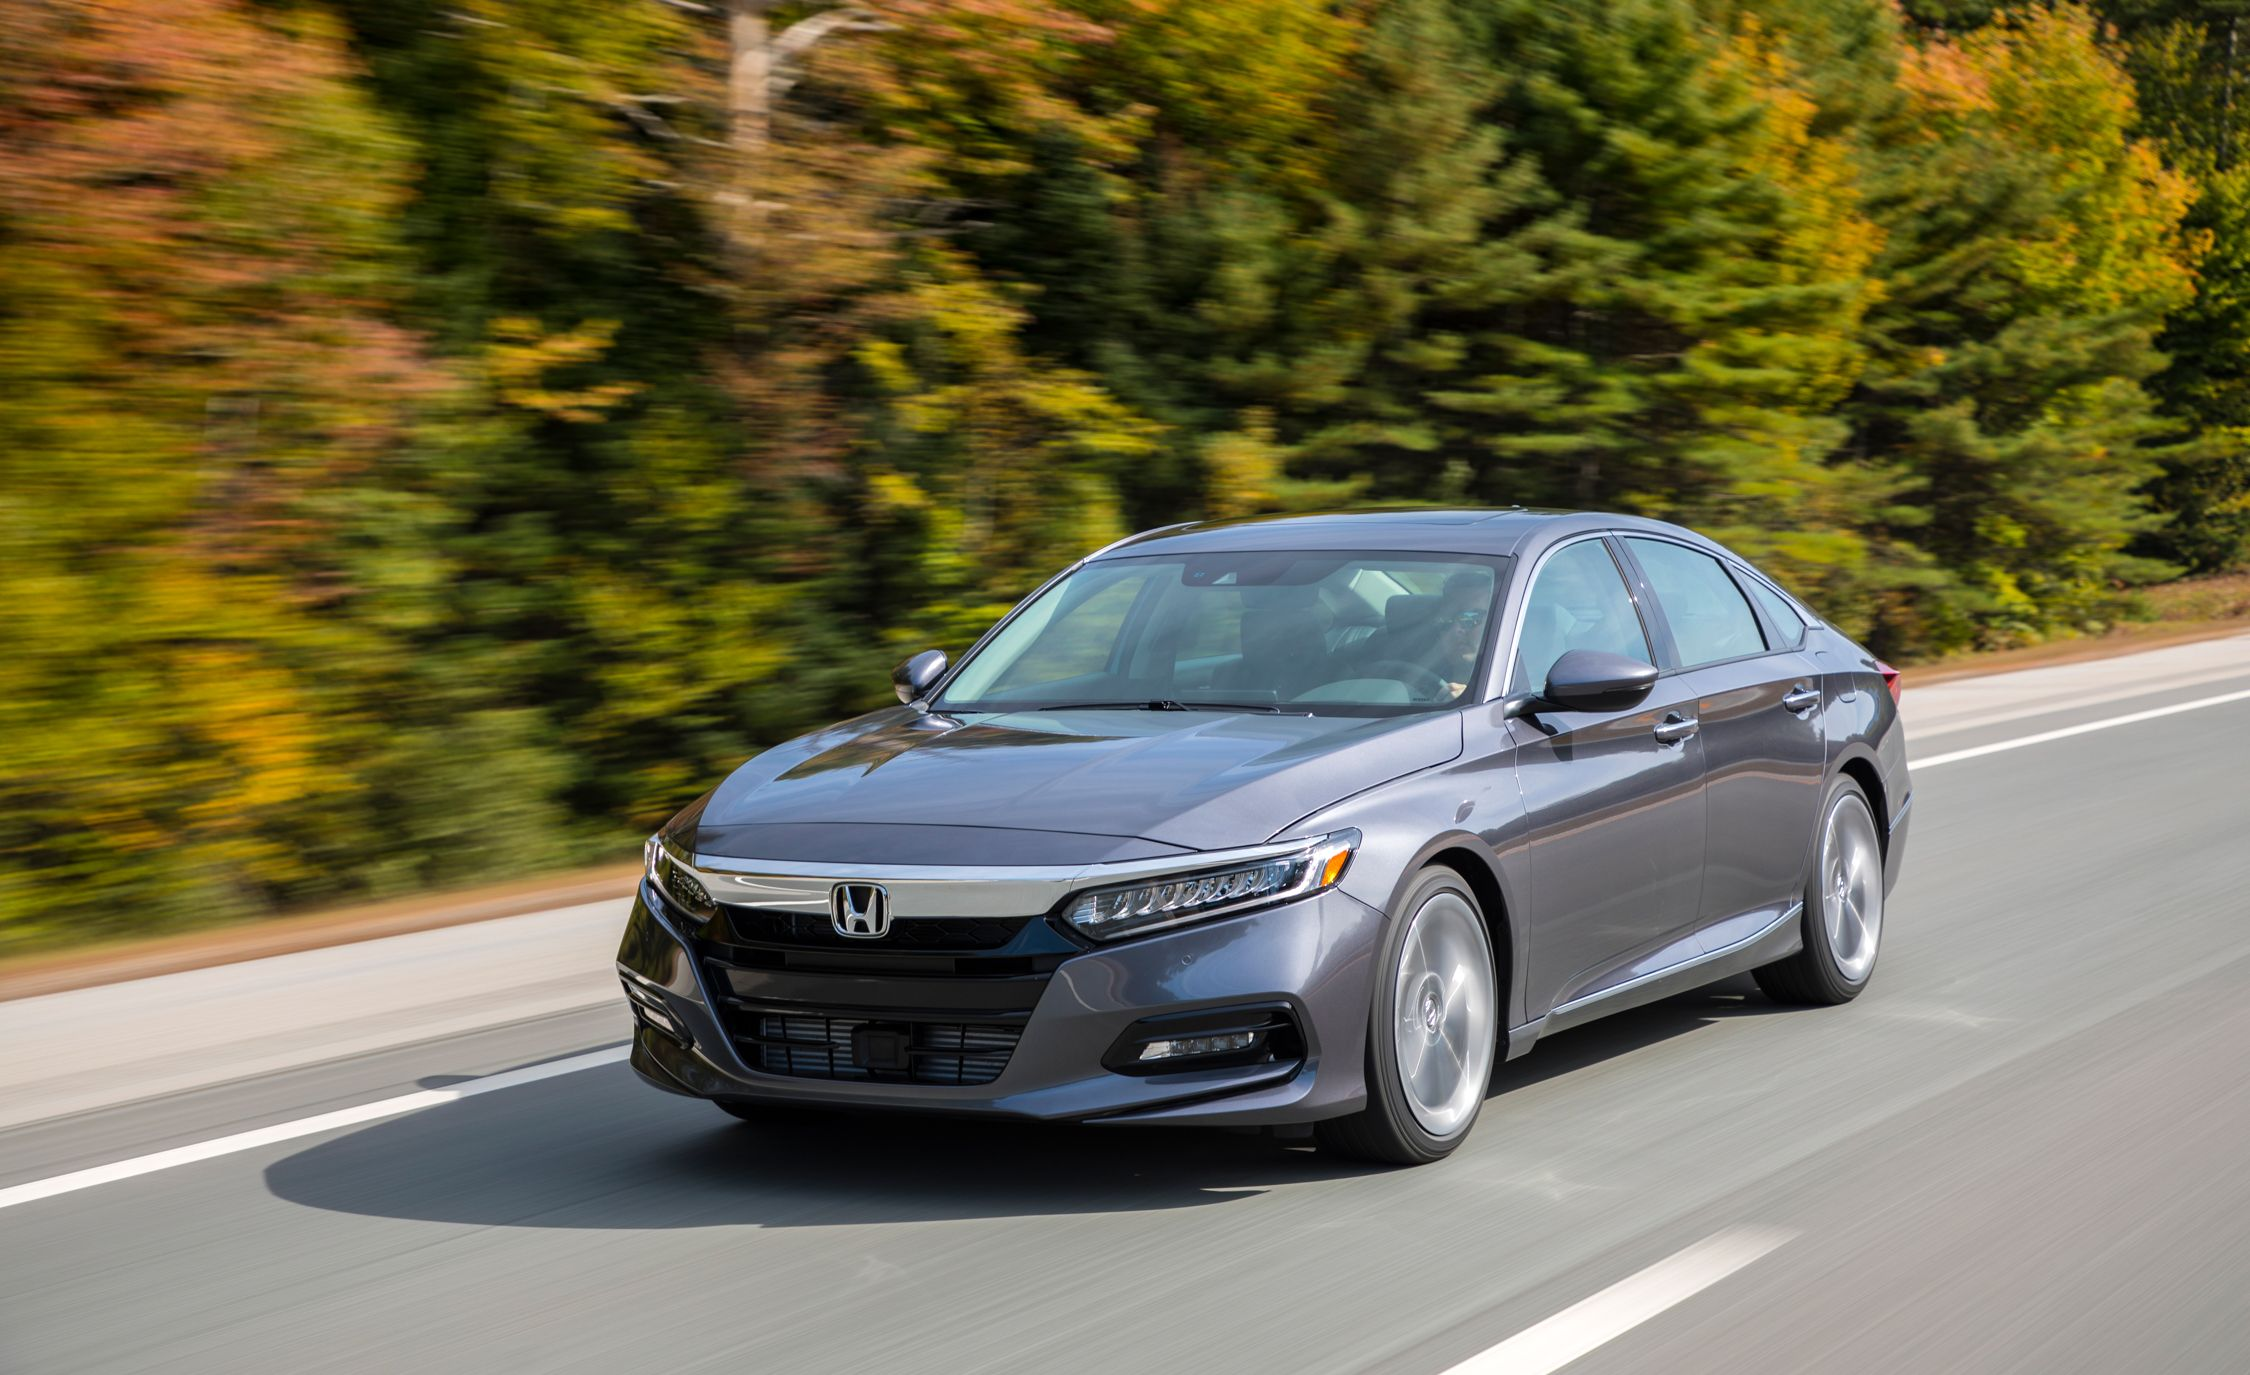 2018 honda accord sedan pictures photo gallery car and for 2018 honda accord manual